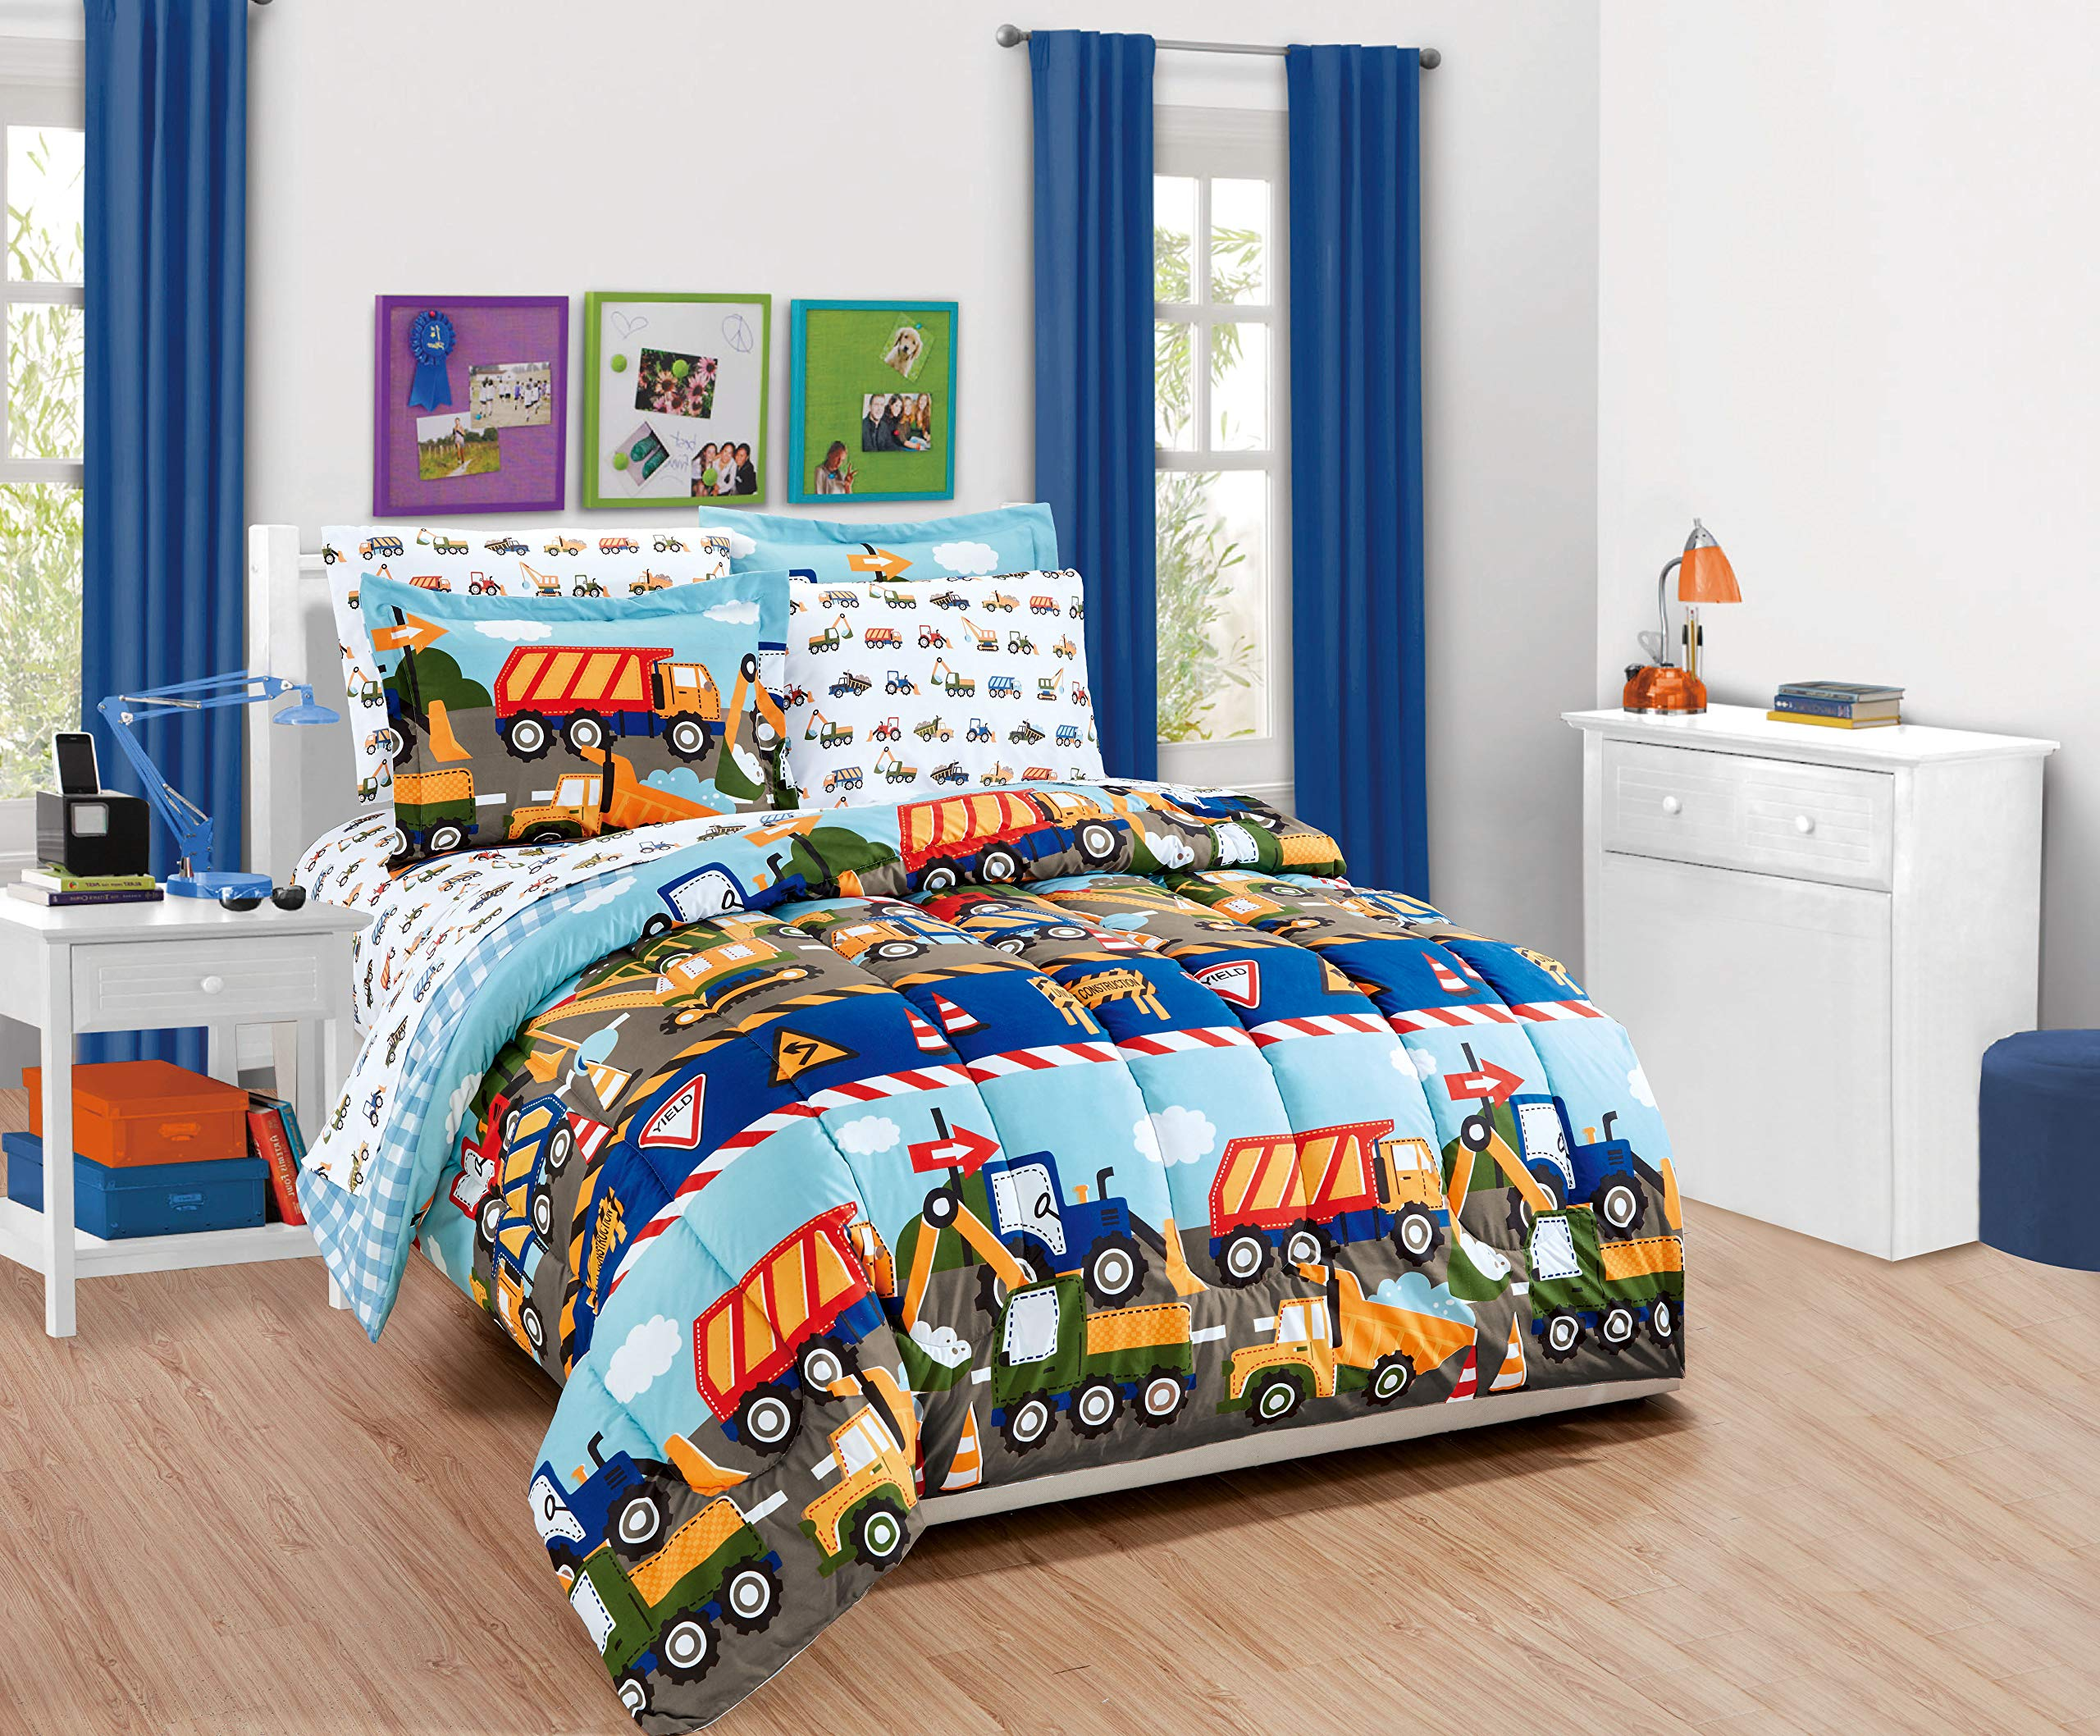 Linen Plus Twin Size 5pc Comforter Set for Kids Construction Tractors Blue Red Green Yellow Grey White New